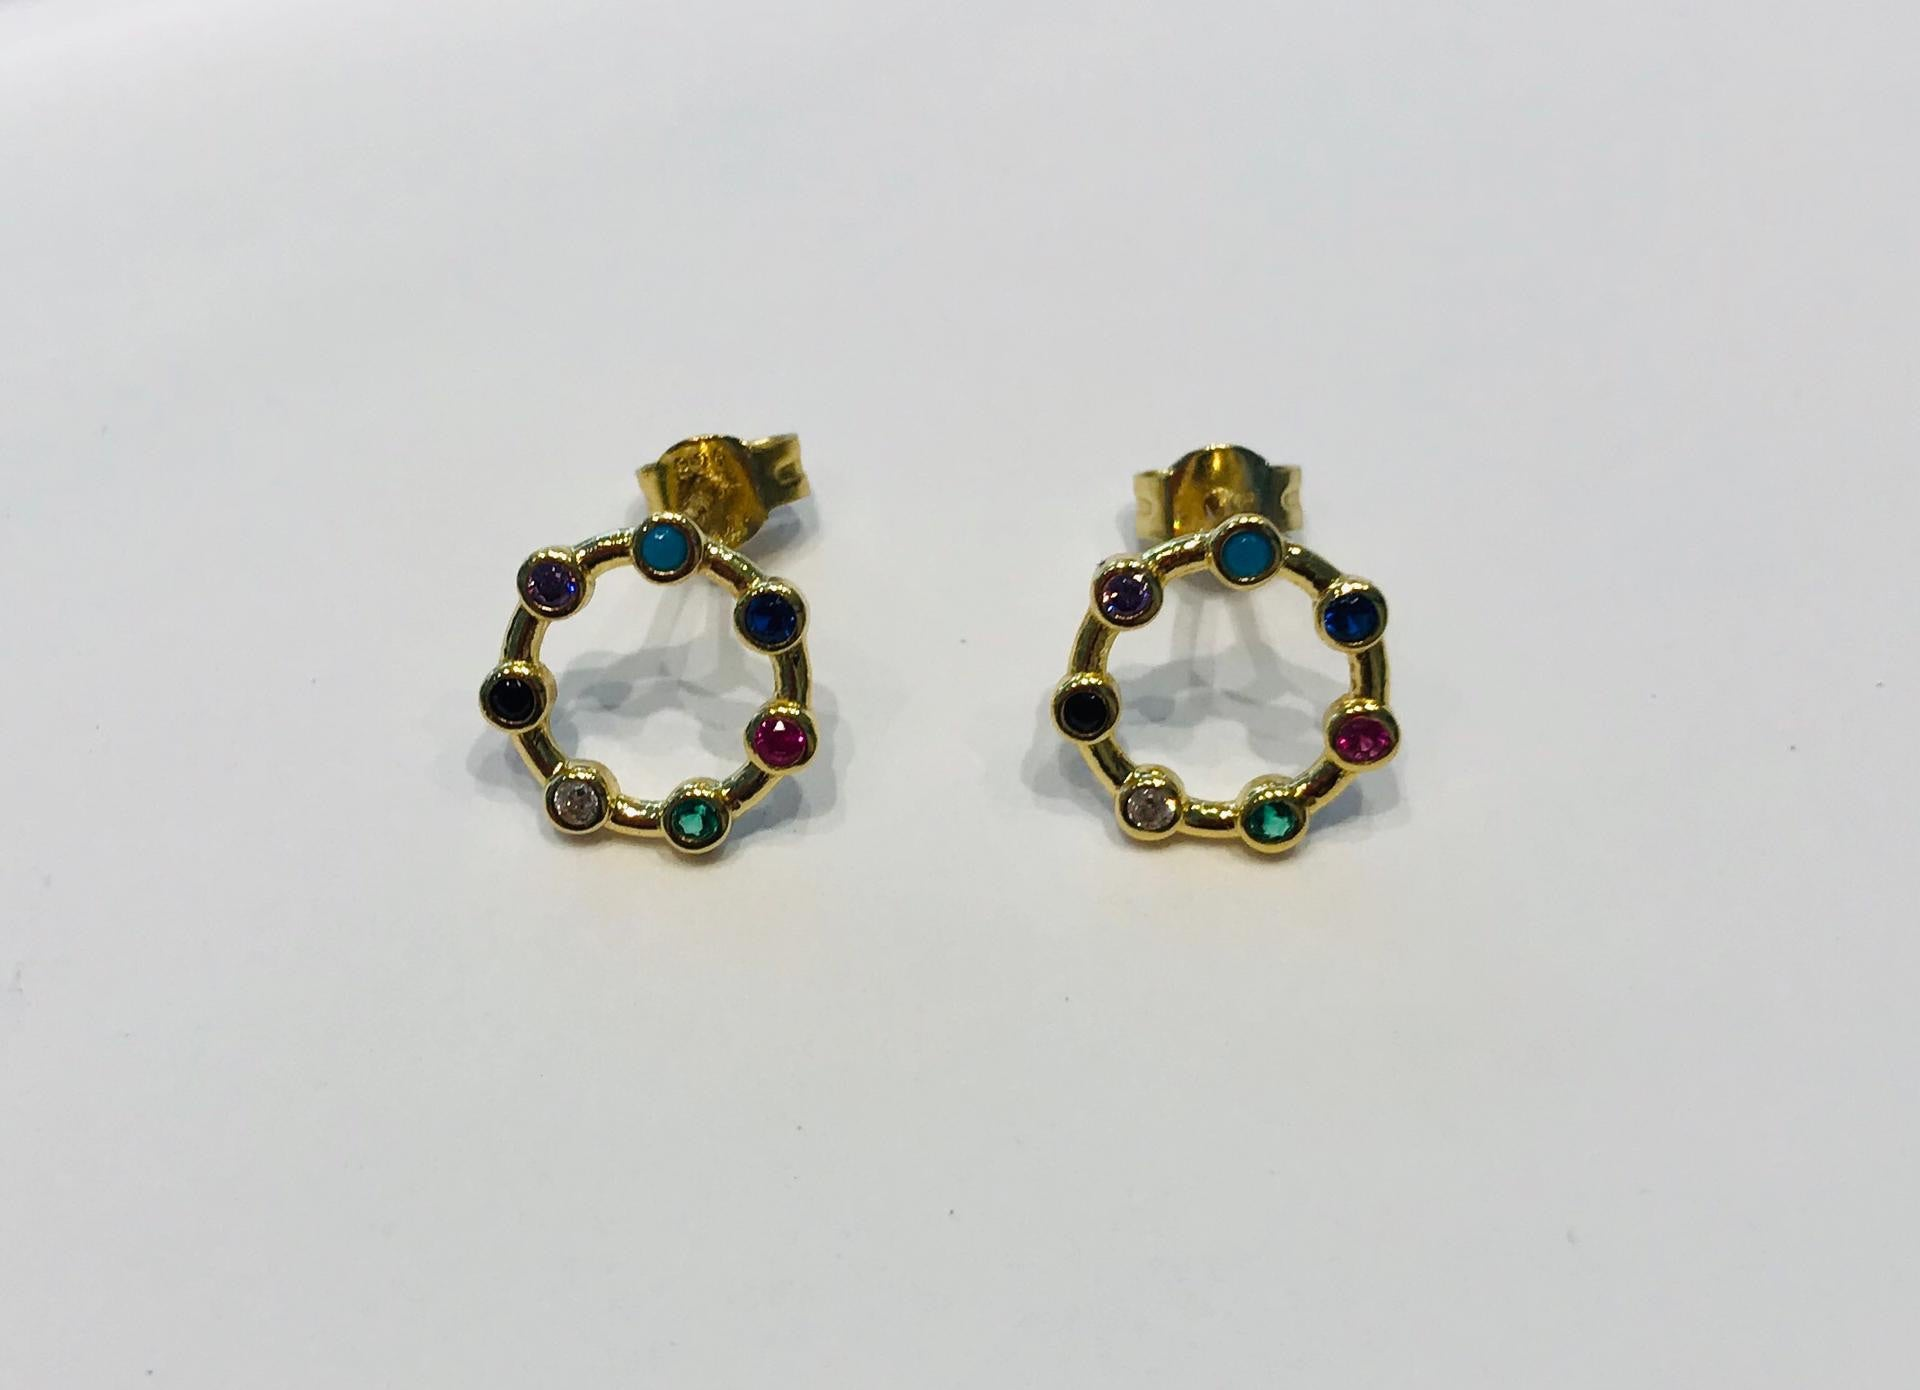 Gold plated earrings with crystals by SAM&CEL.